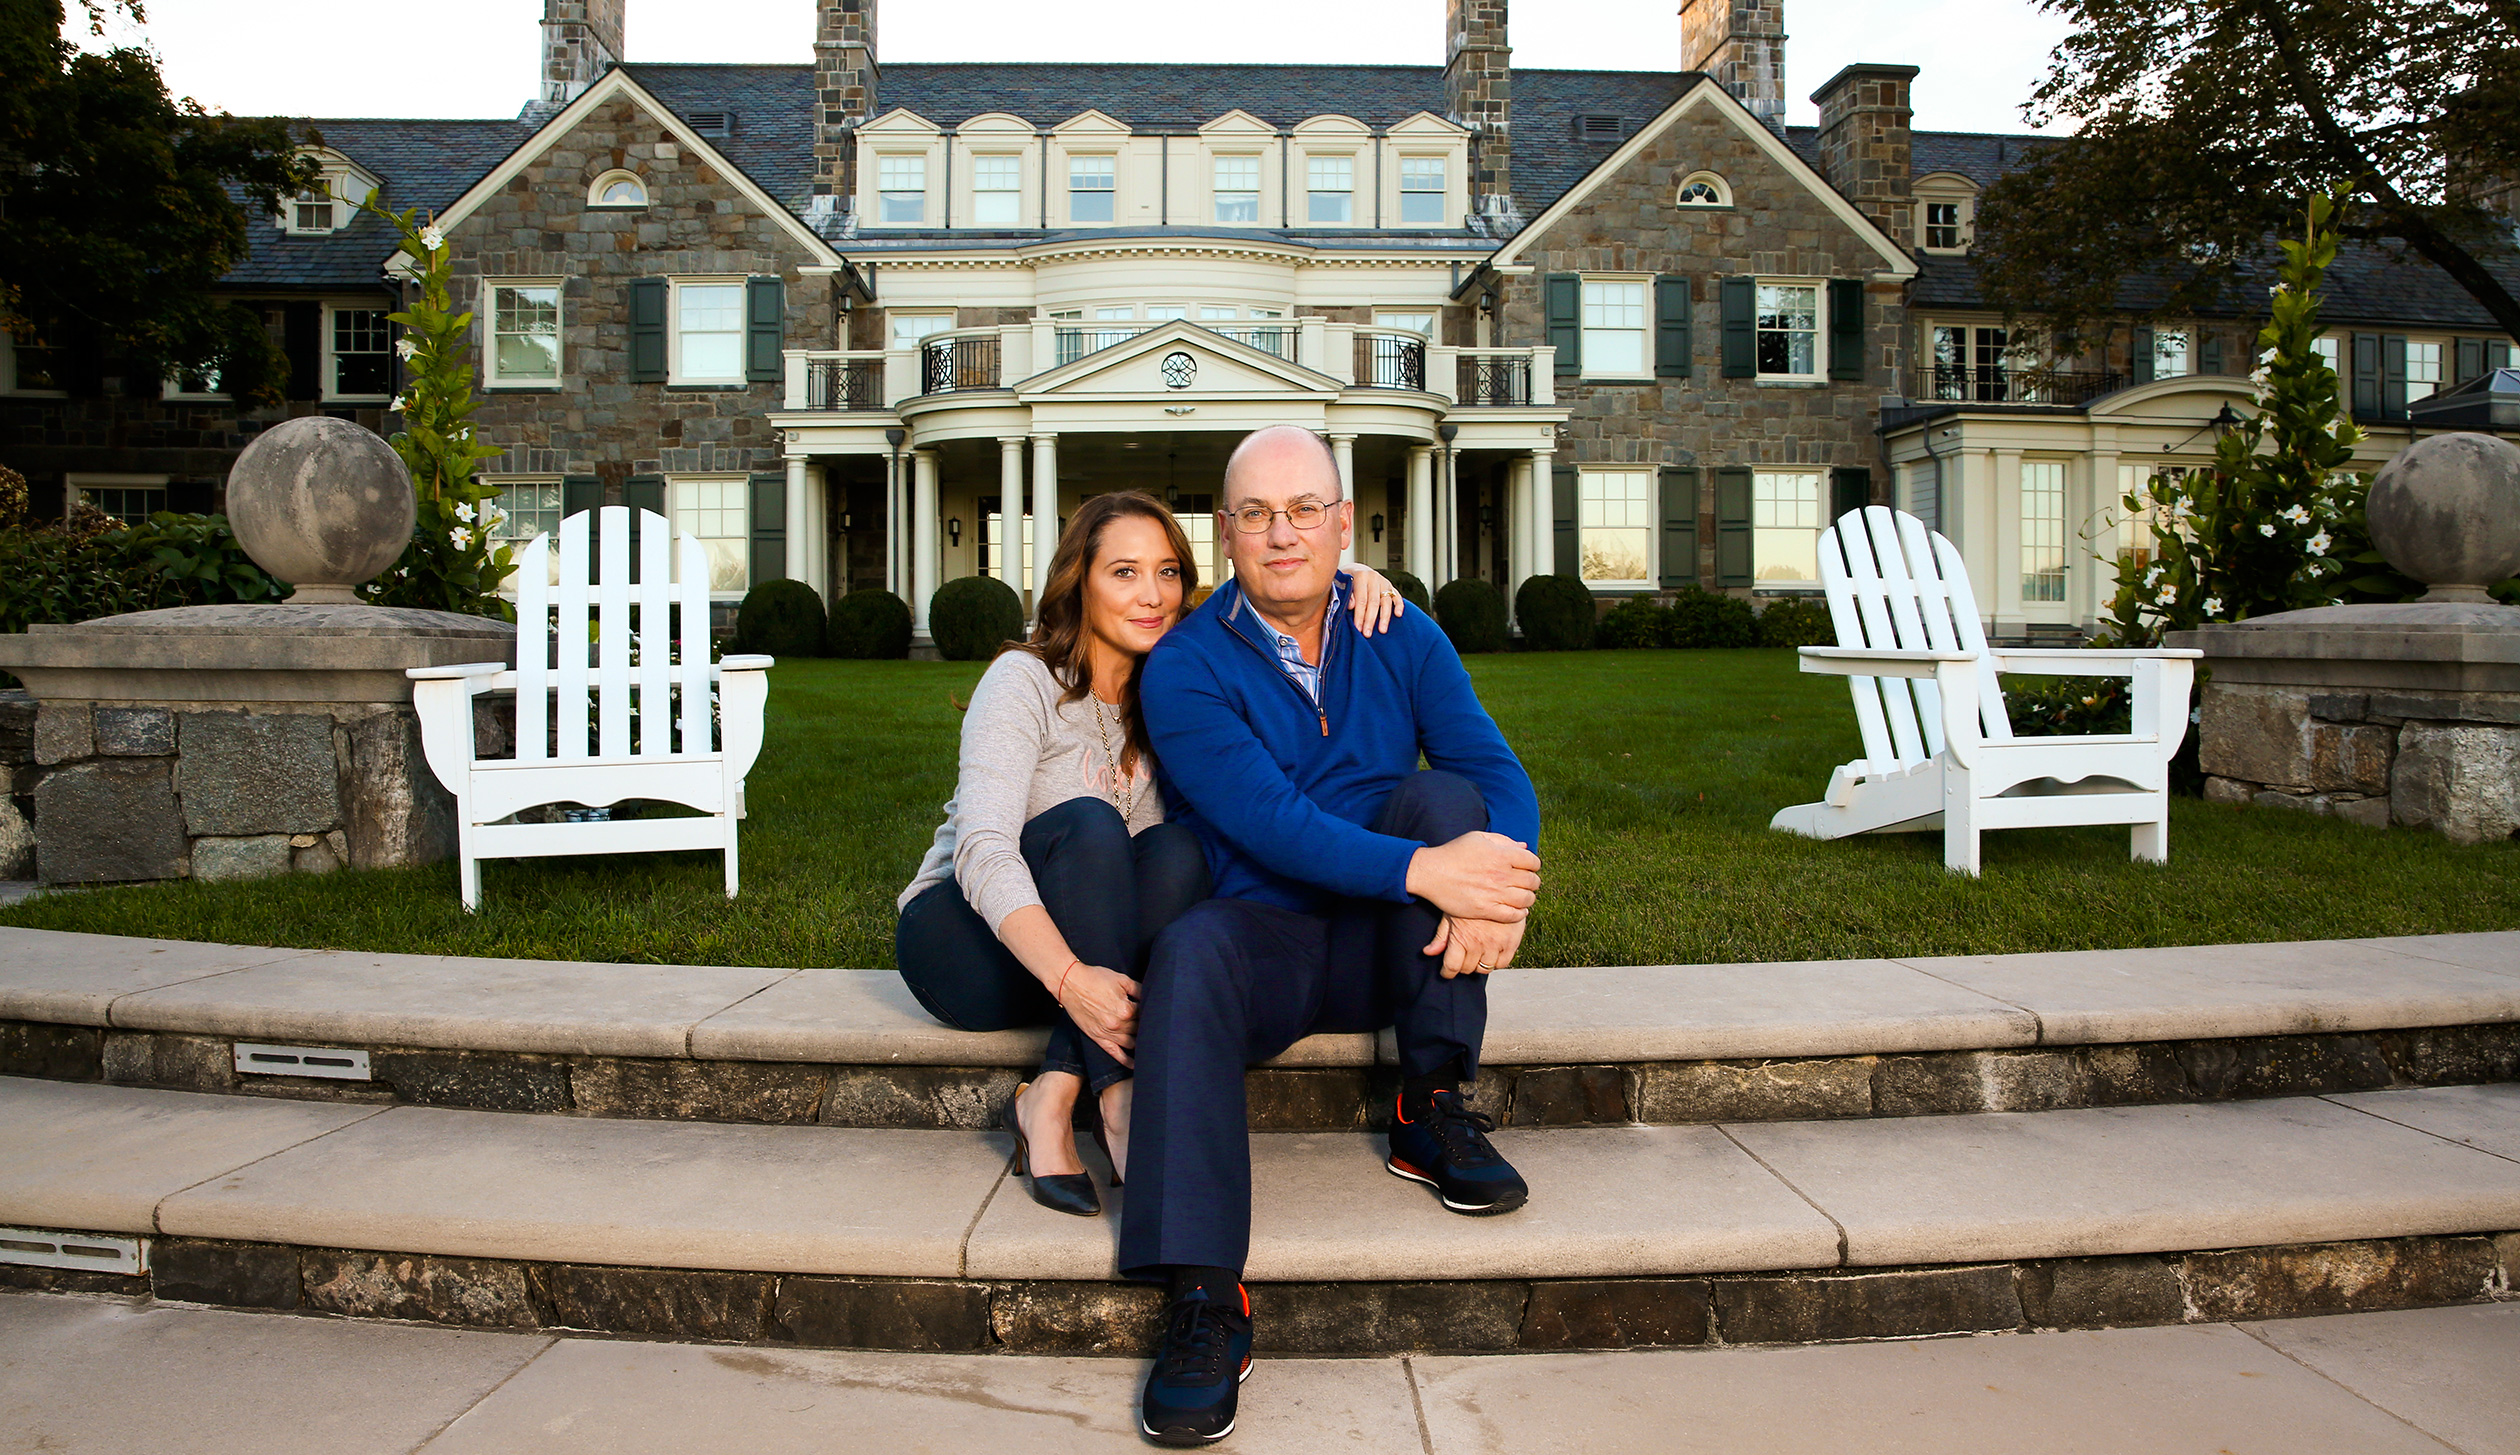 Steve and Alex Cohen in front of their home in Greenwich, Conn. The couple are worth about $13 billion, a fortune largely undented by legal troubles at Cohen's former hedge fund firm.